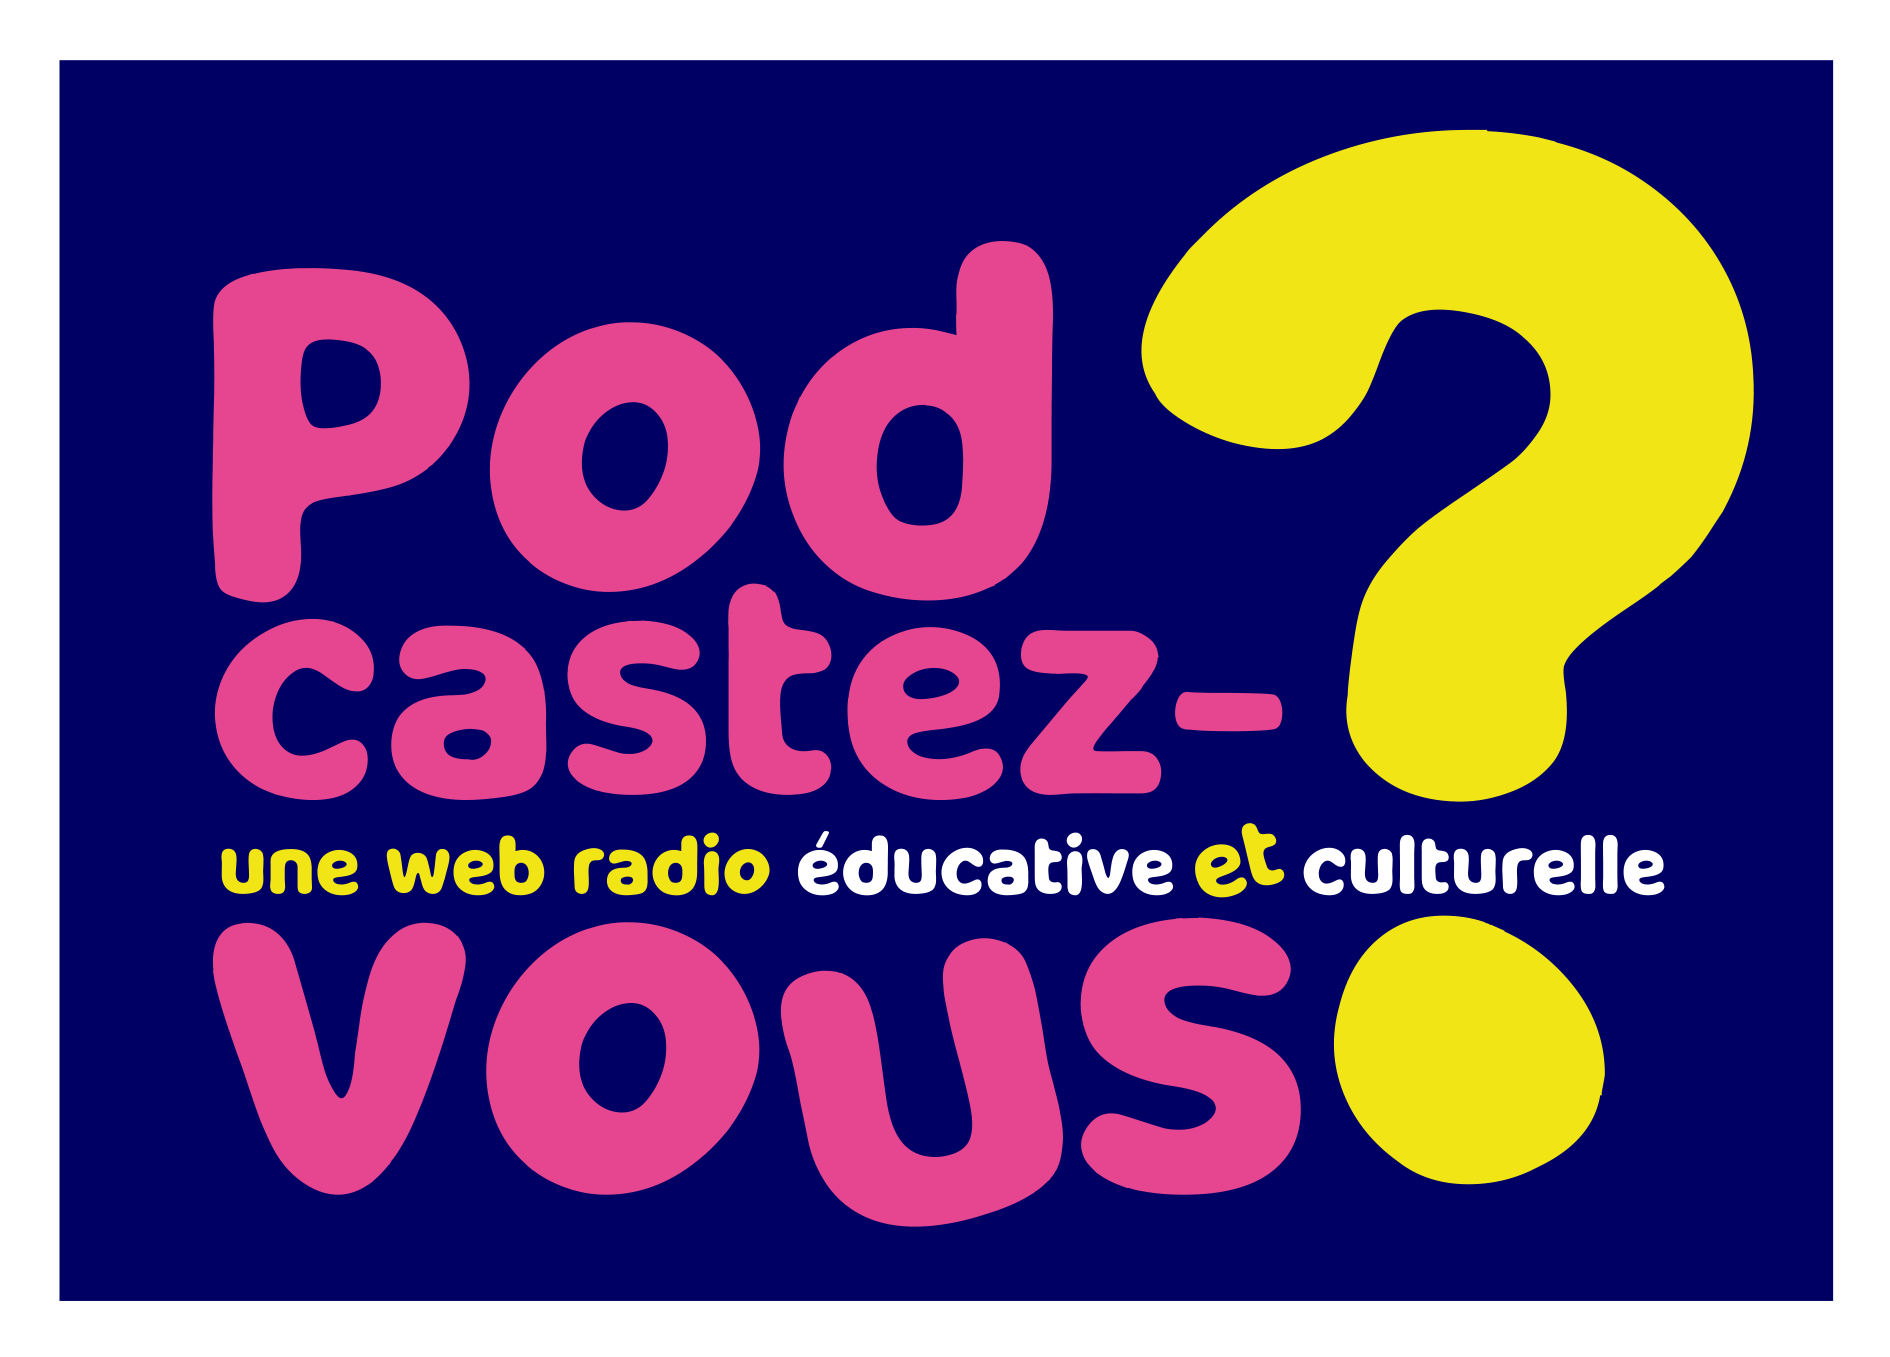 PodcastezVous.fr